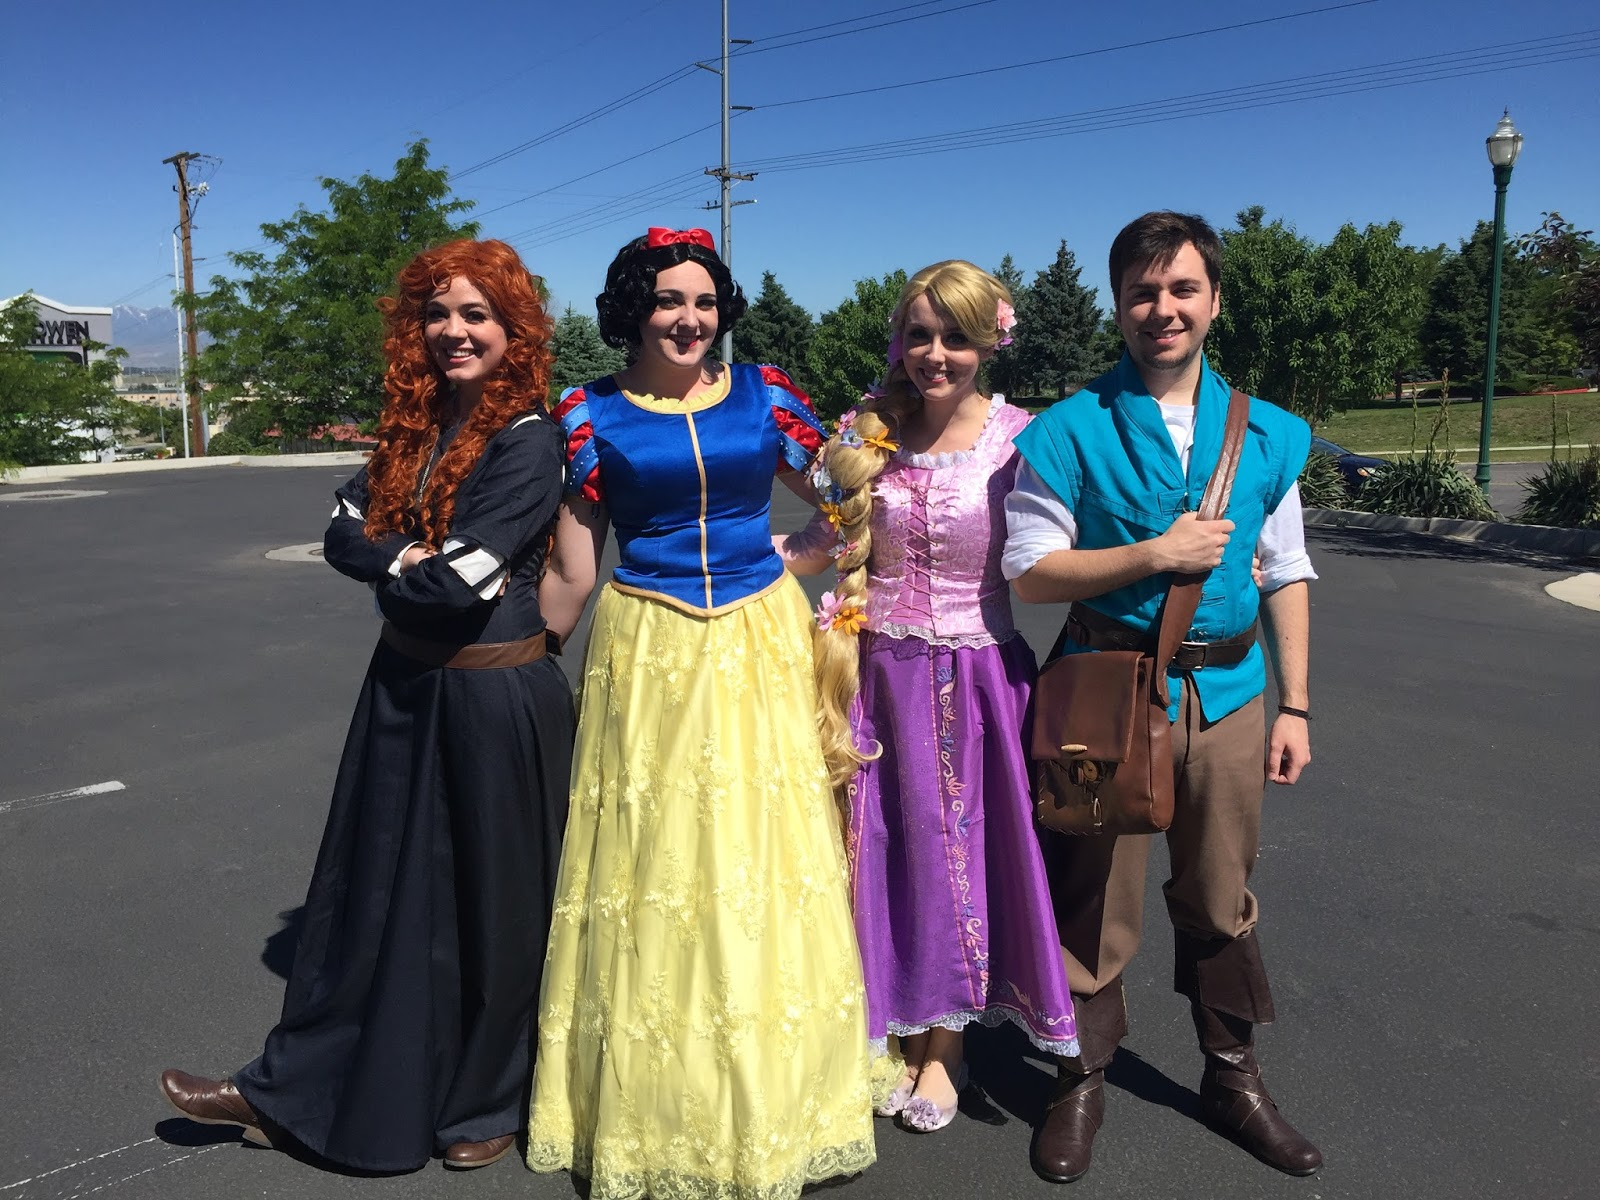 Party with the Princesses at our fertility fundraiser